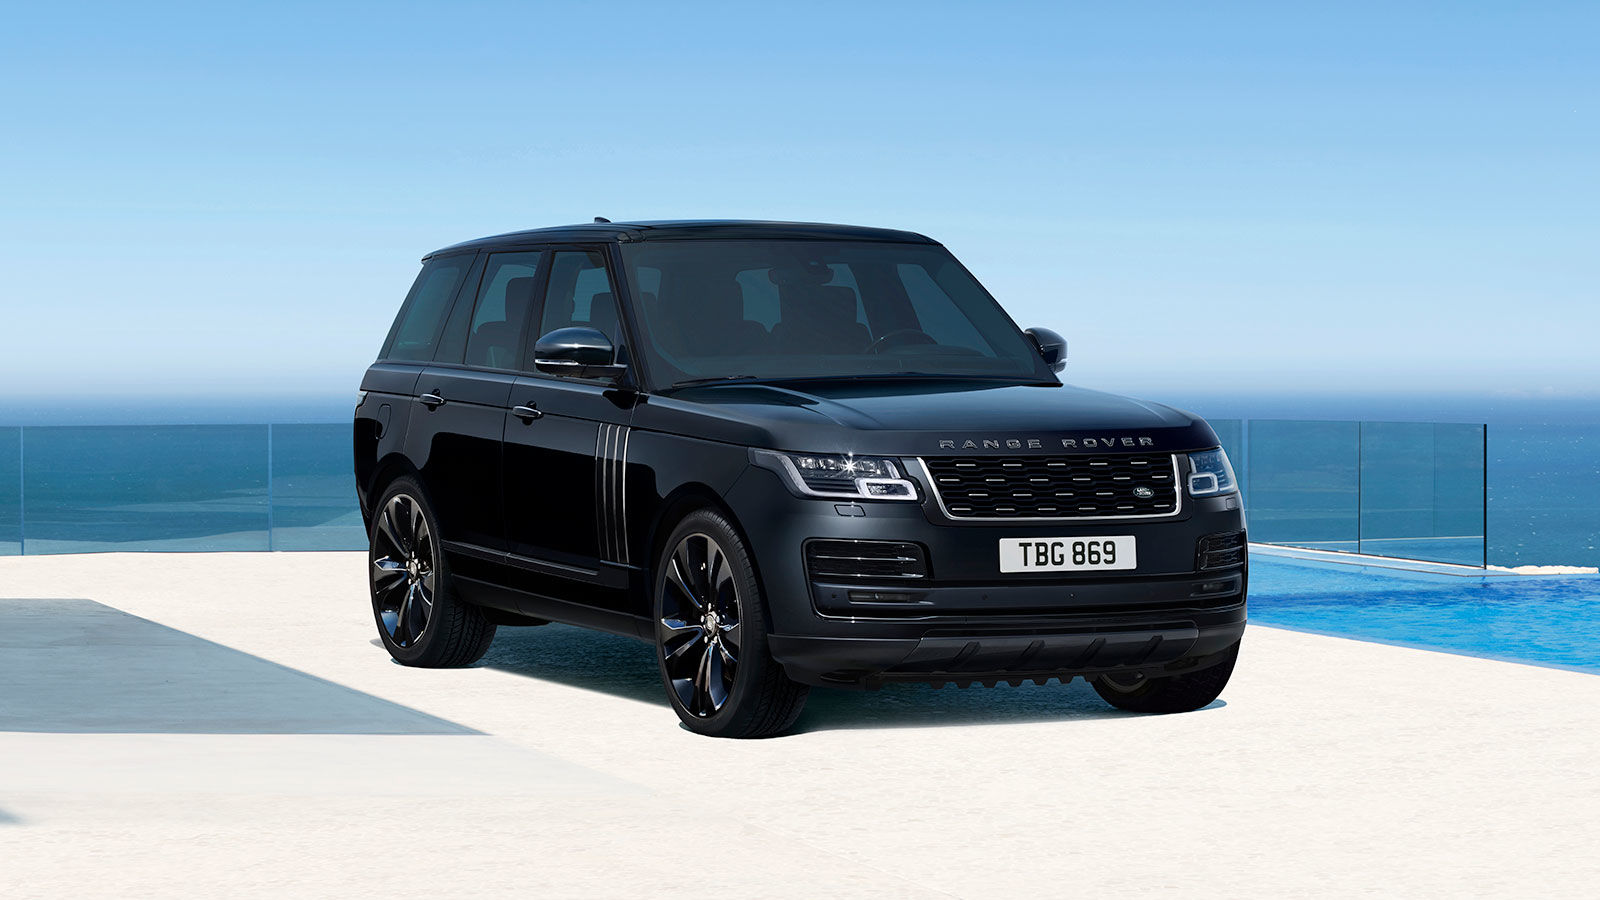 Range Rover - Editions & Special Vehicles Gallery | Land Rover Bahrain